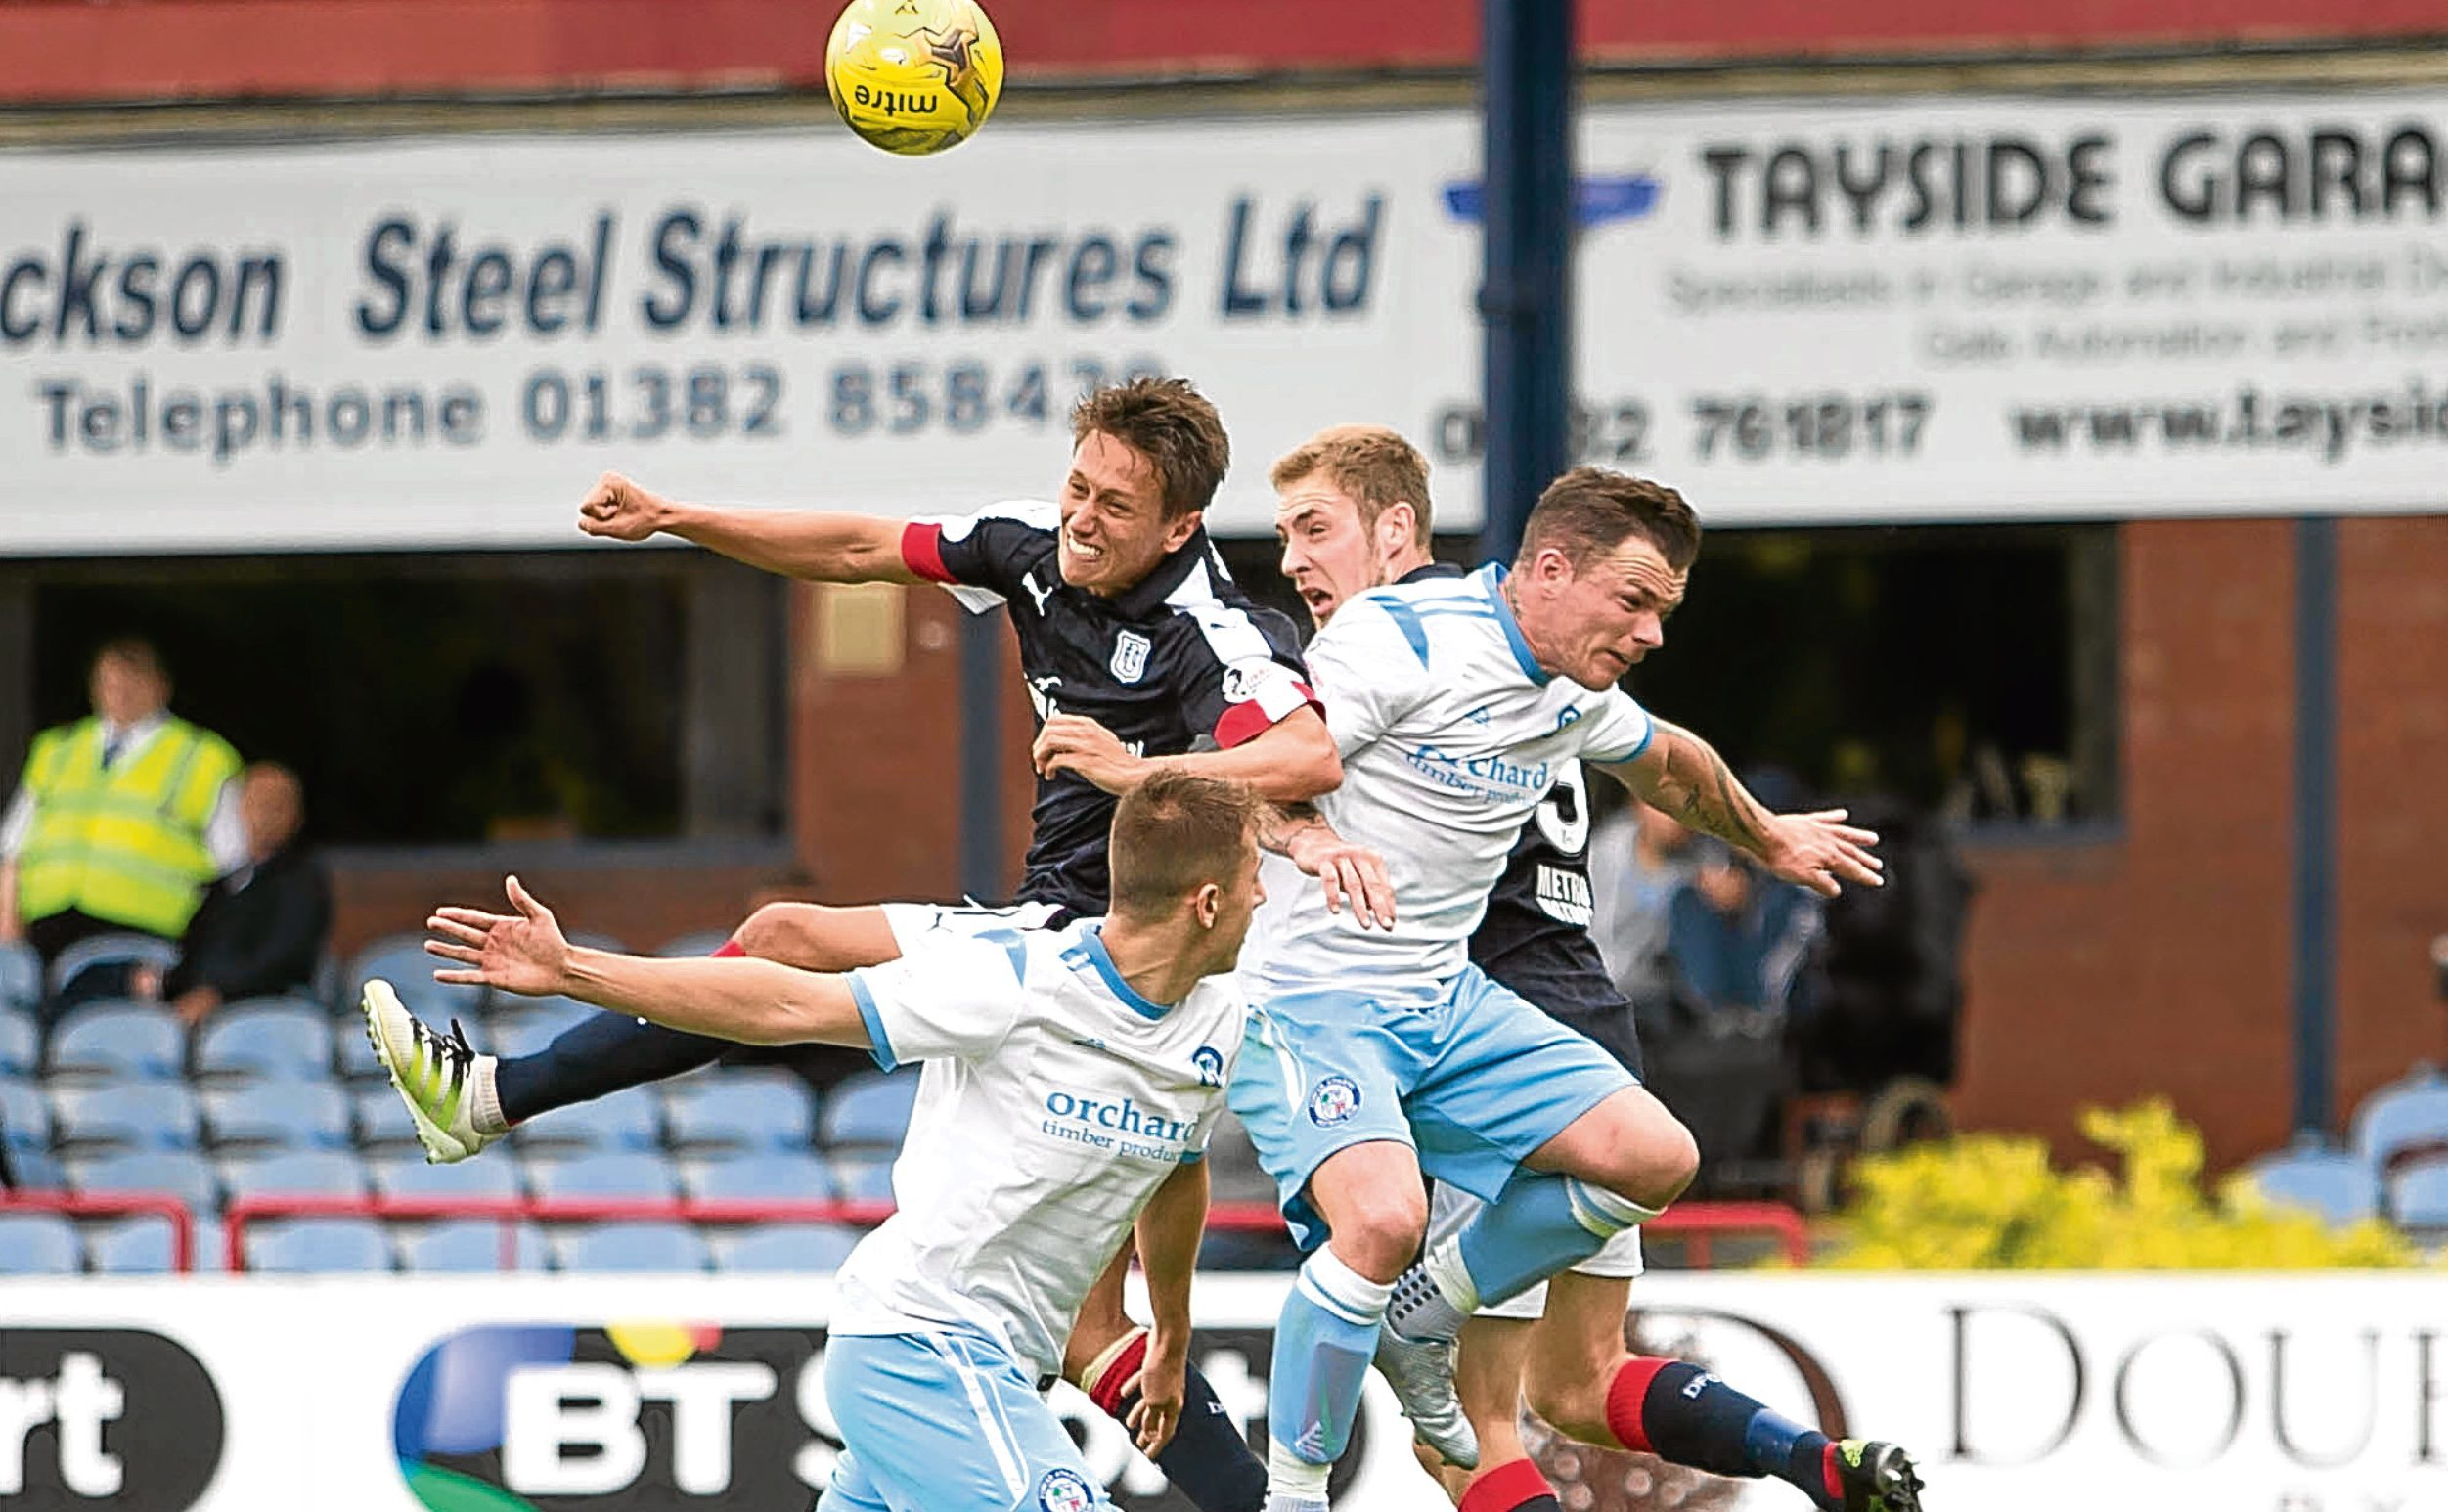 Dundee kick off the new season with a home cup clash against Forfar Athletic.